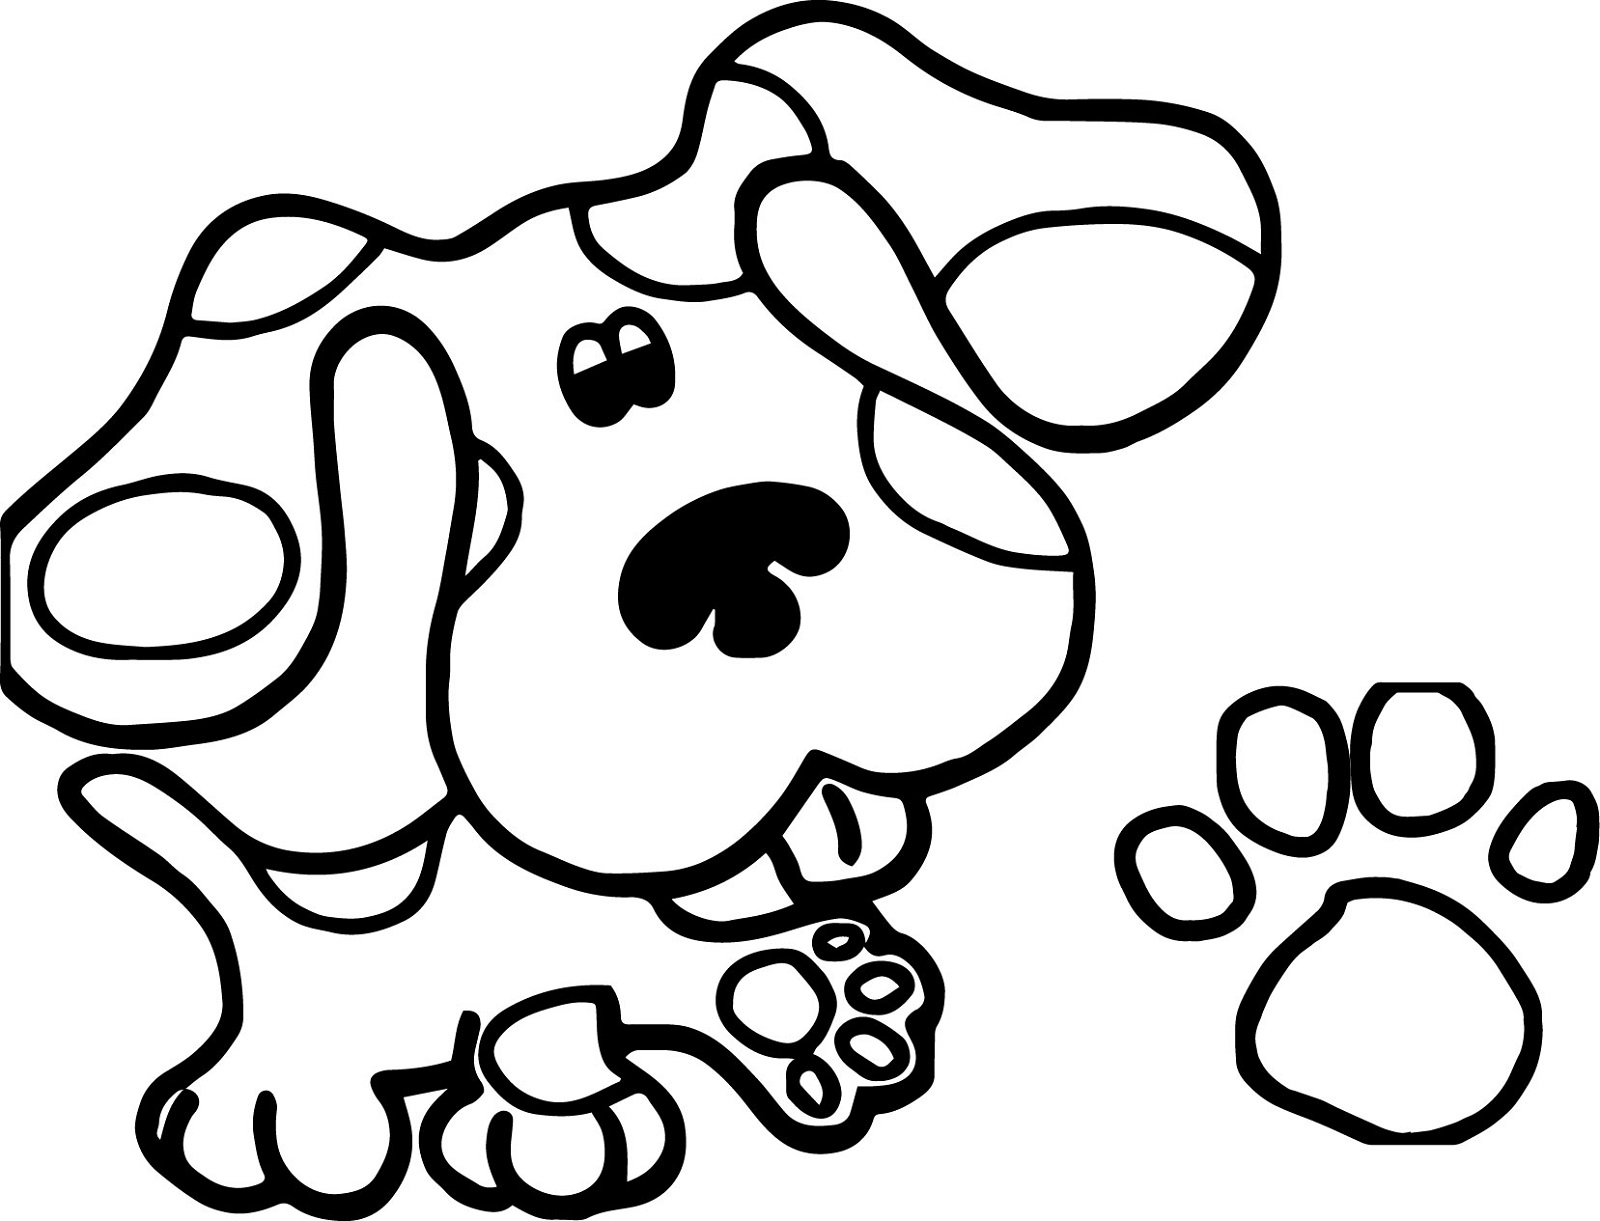 paw prints coloring pages paw coloring pages to download and print for free coloring pages prints paw